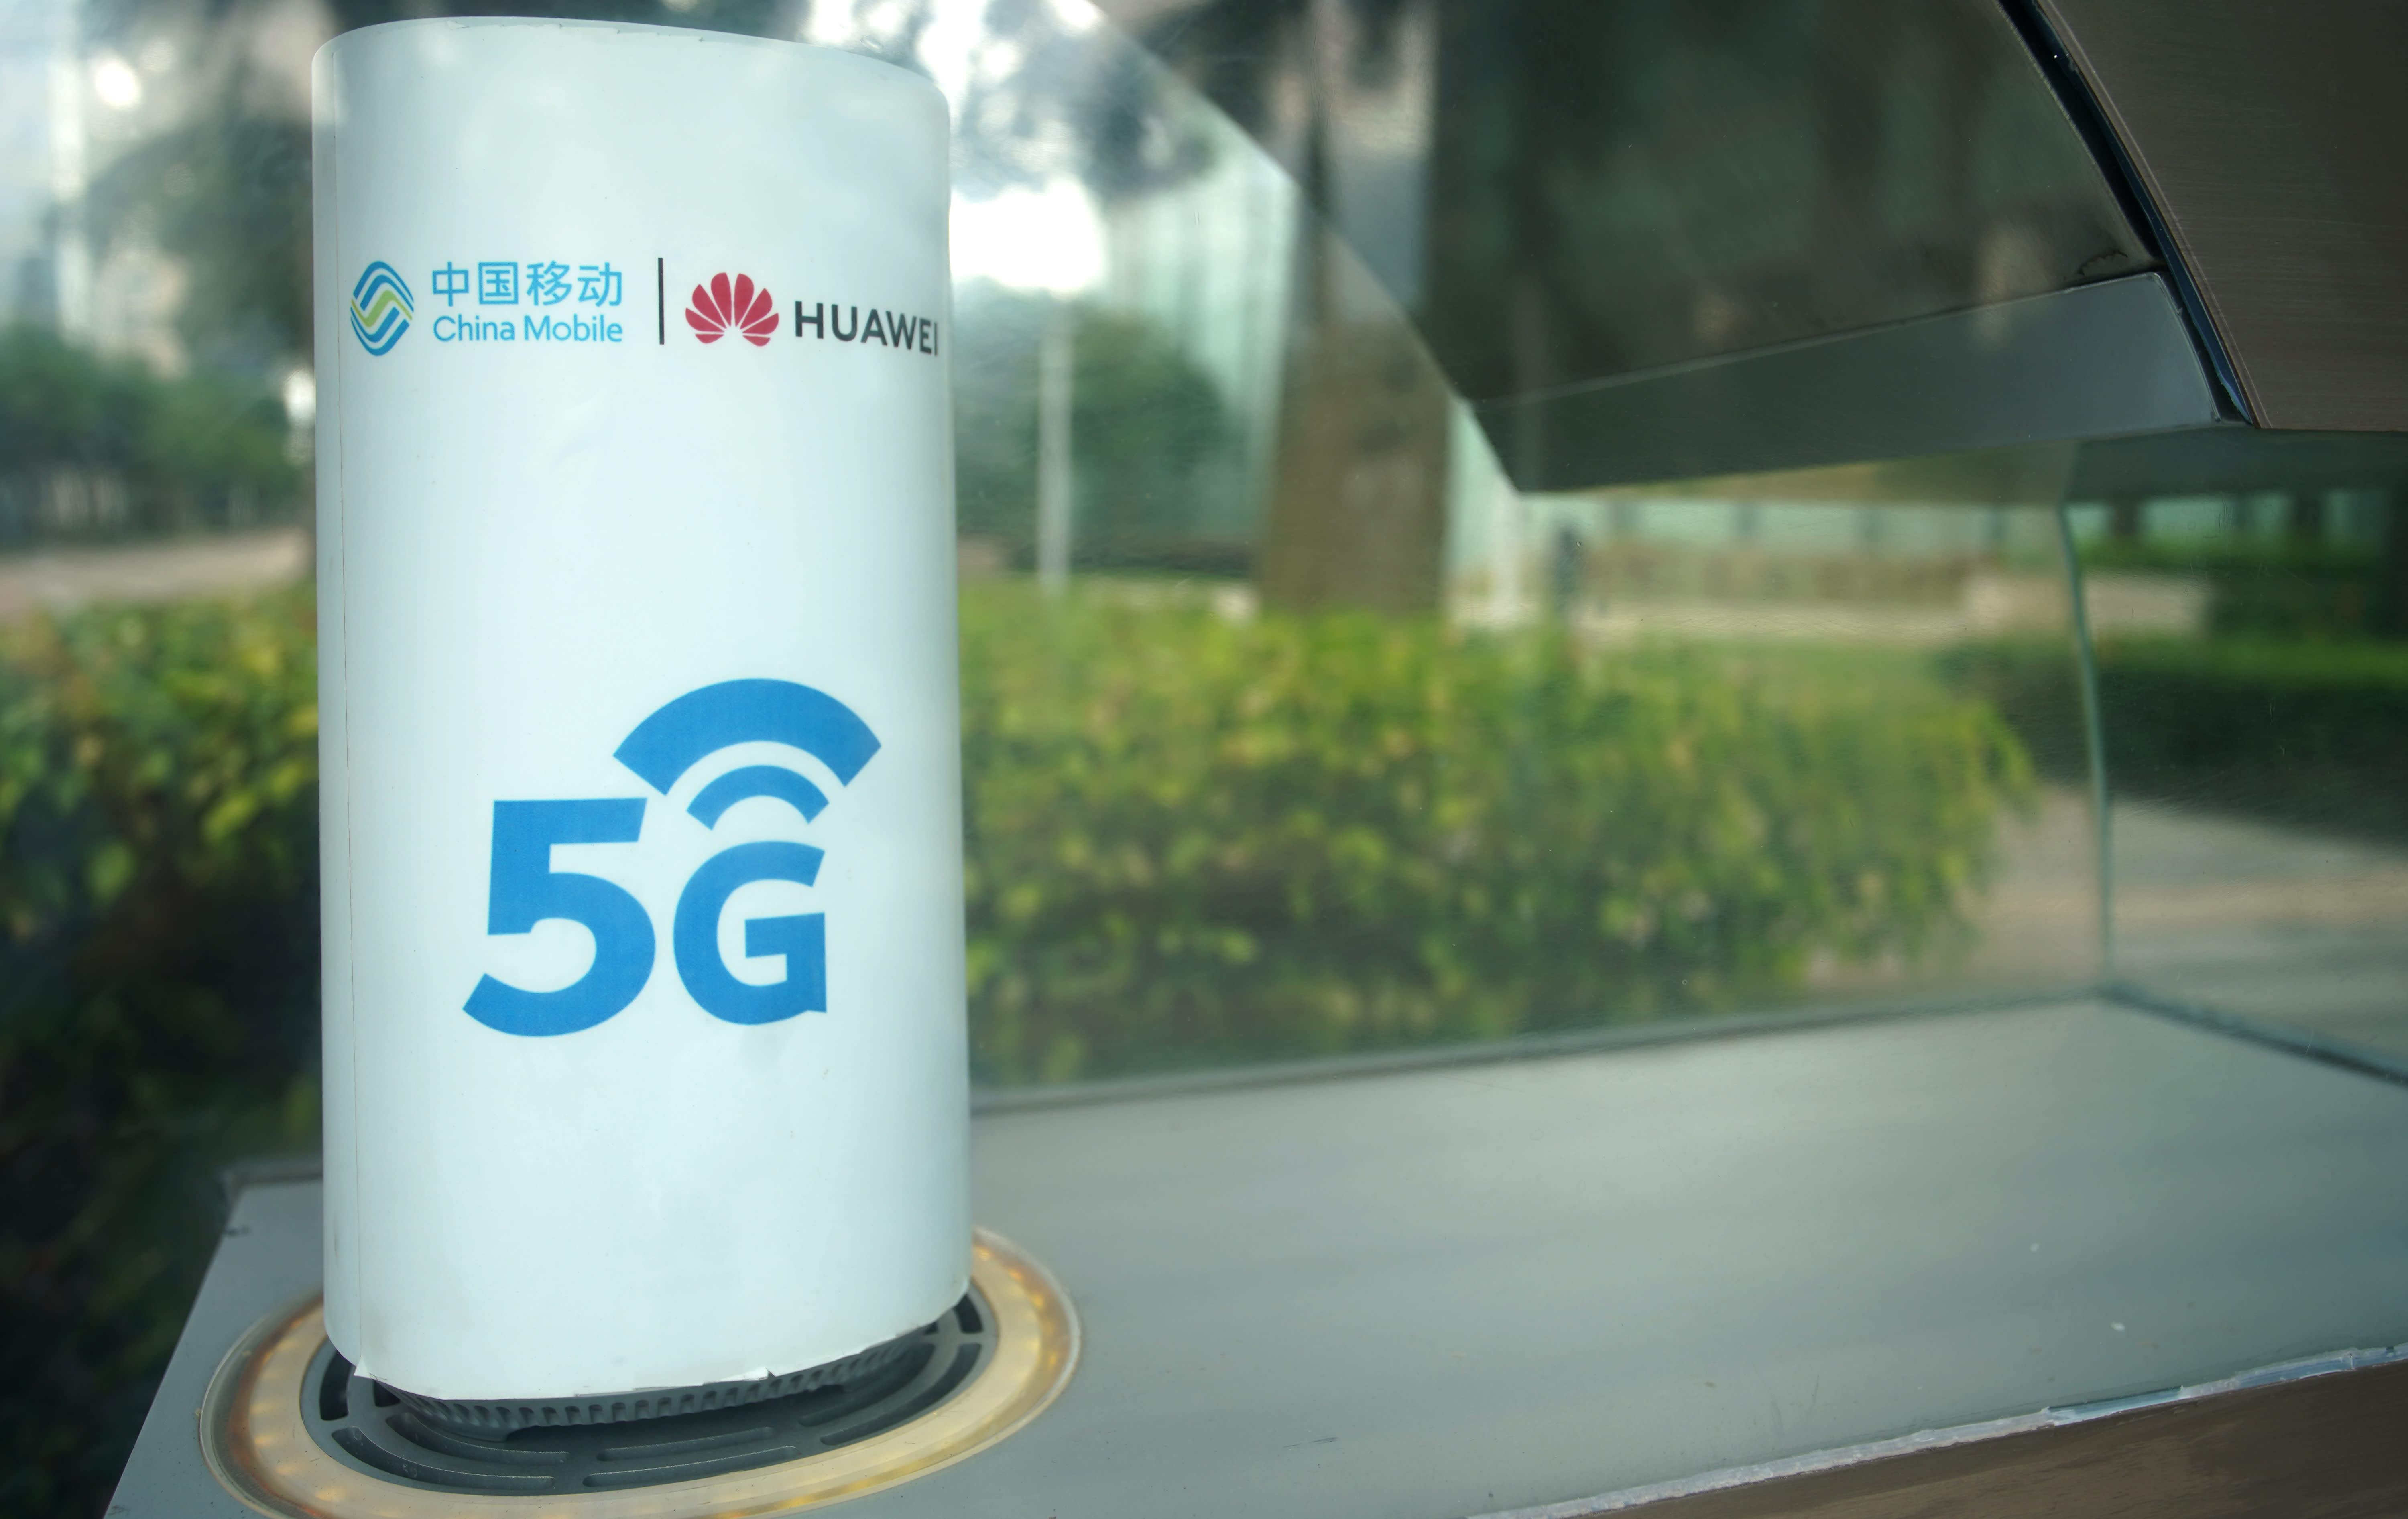 UK's new leader must urgently decide on including Huawei in 5G network, lawmakers say